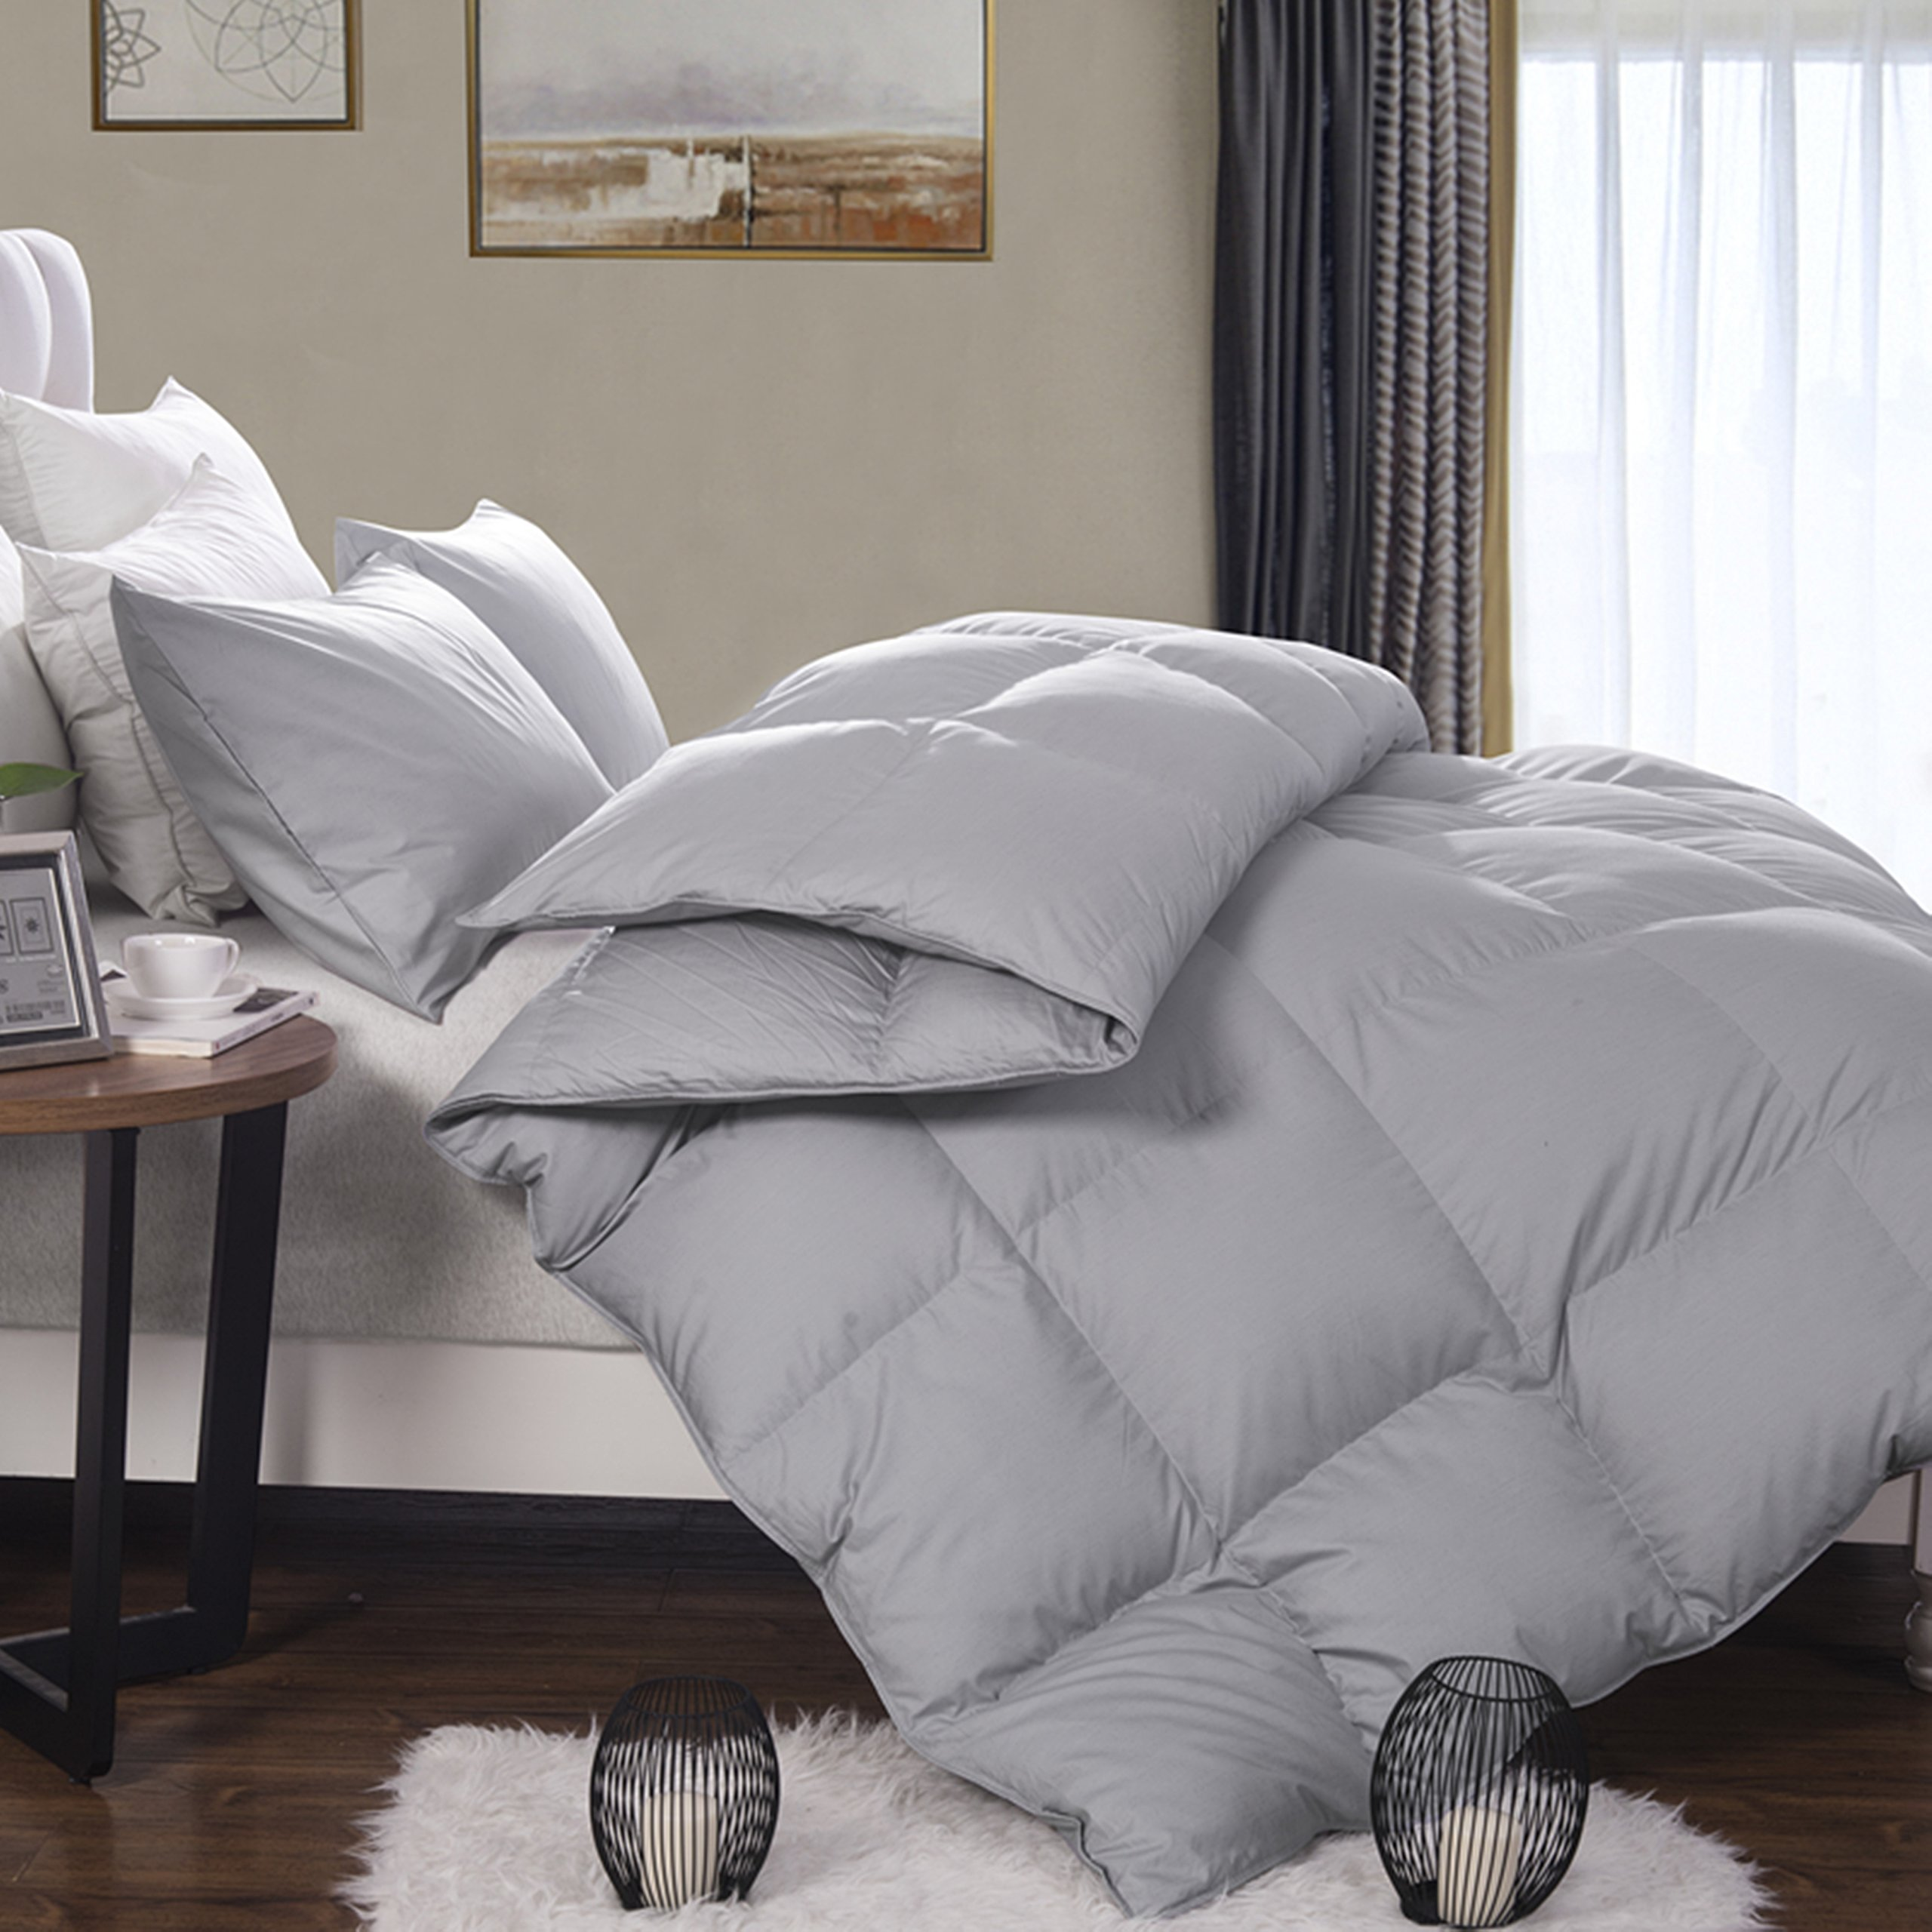 Lightweight Goose Feather Down Comforter Duvet Insert All Season,100% Organic Cotton Cover, Grey (Queen) by ROSE FEATHER